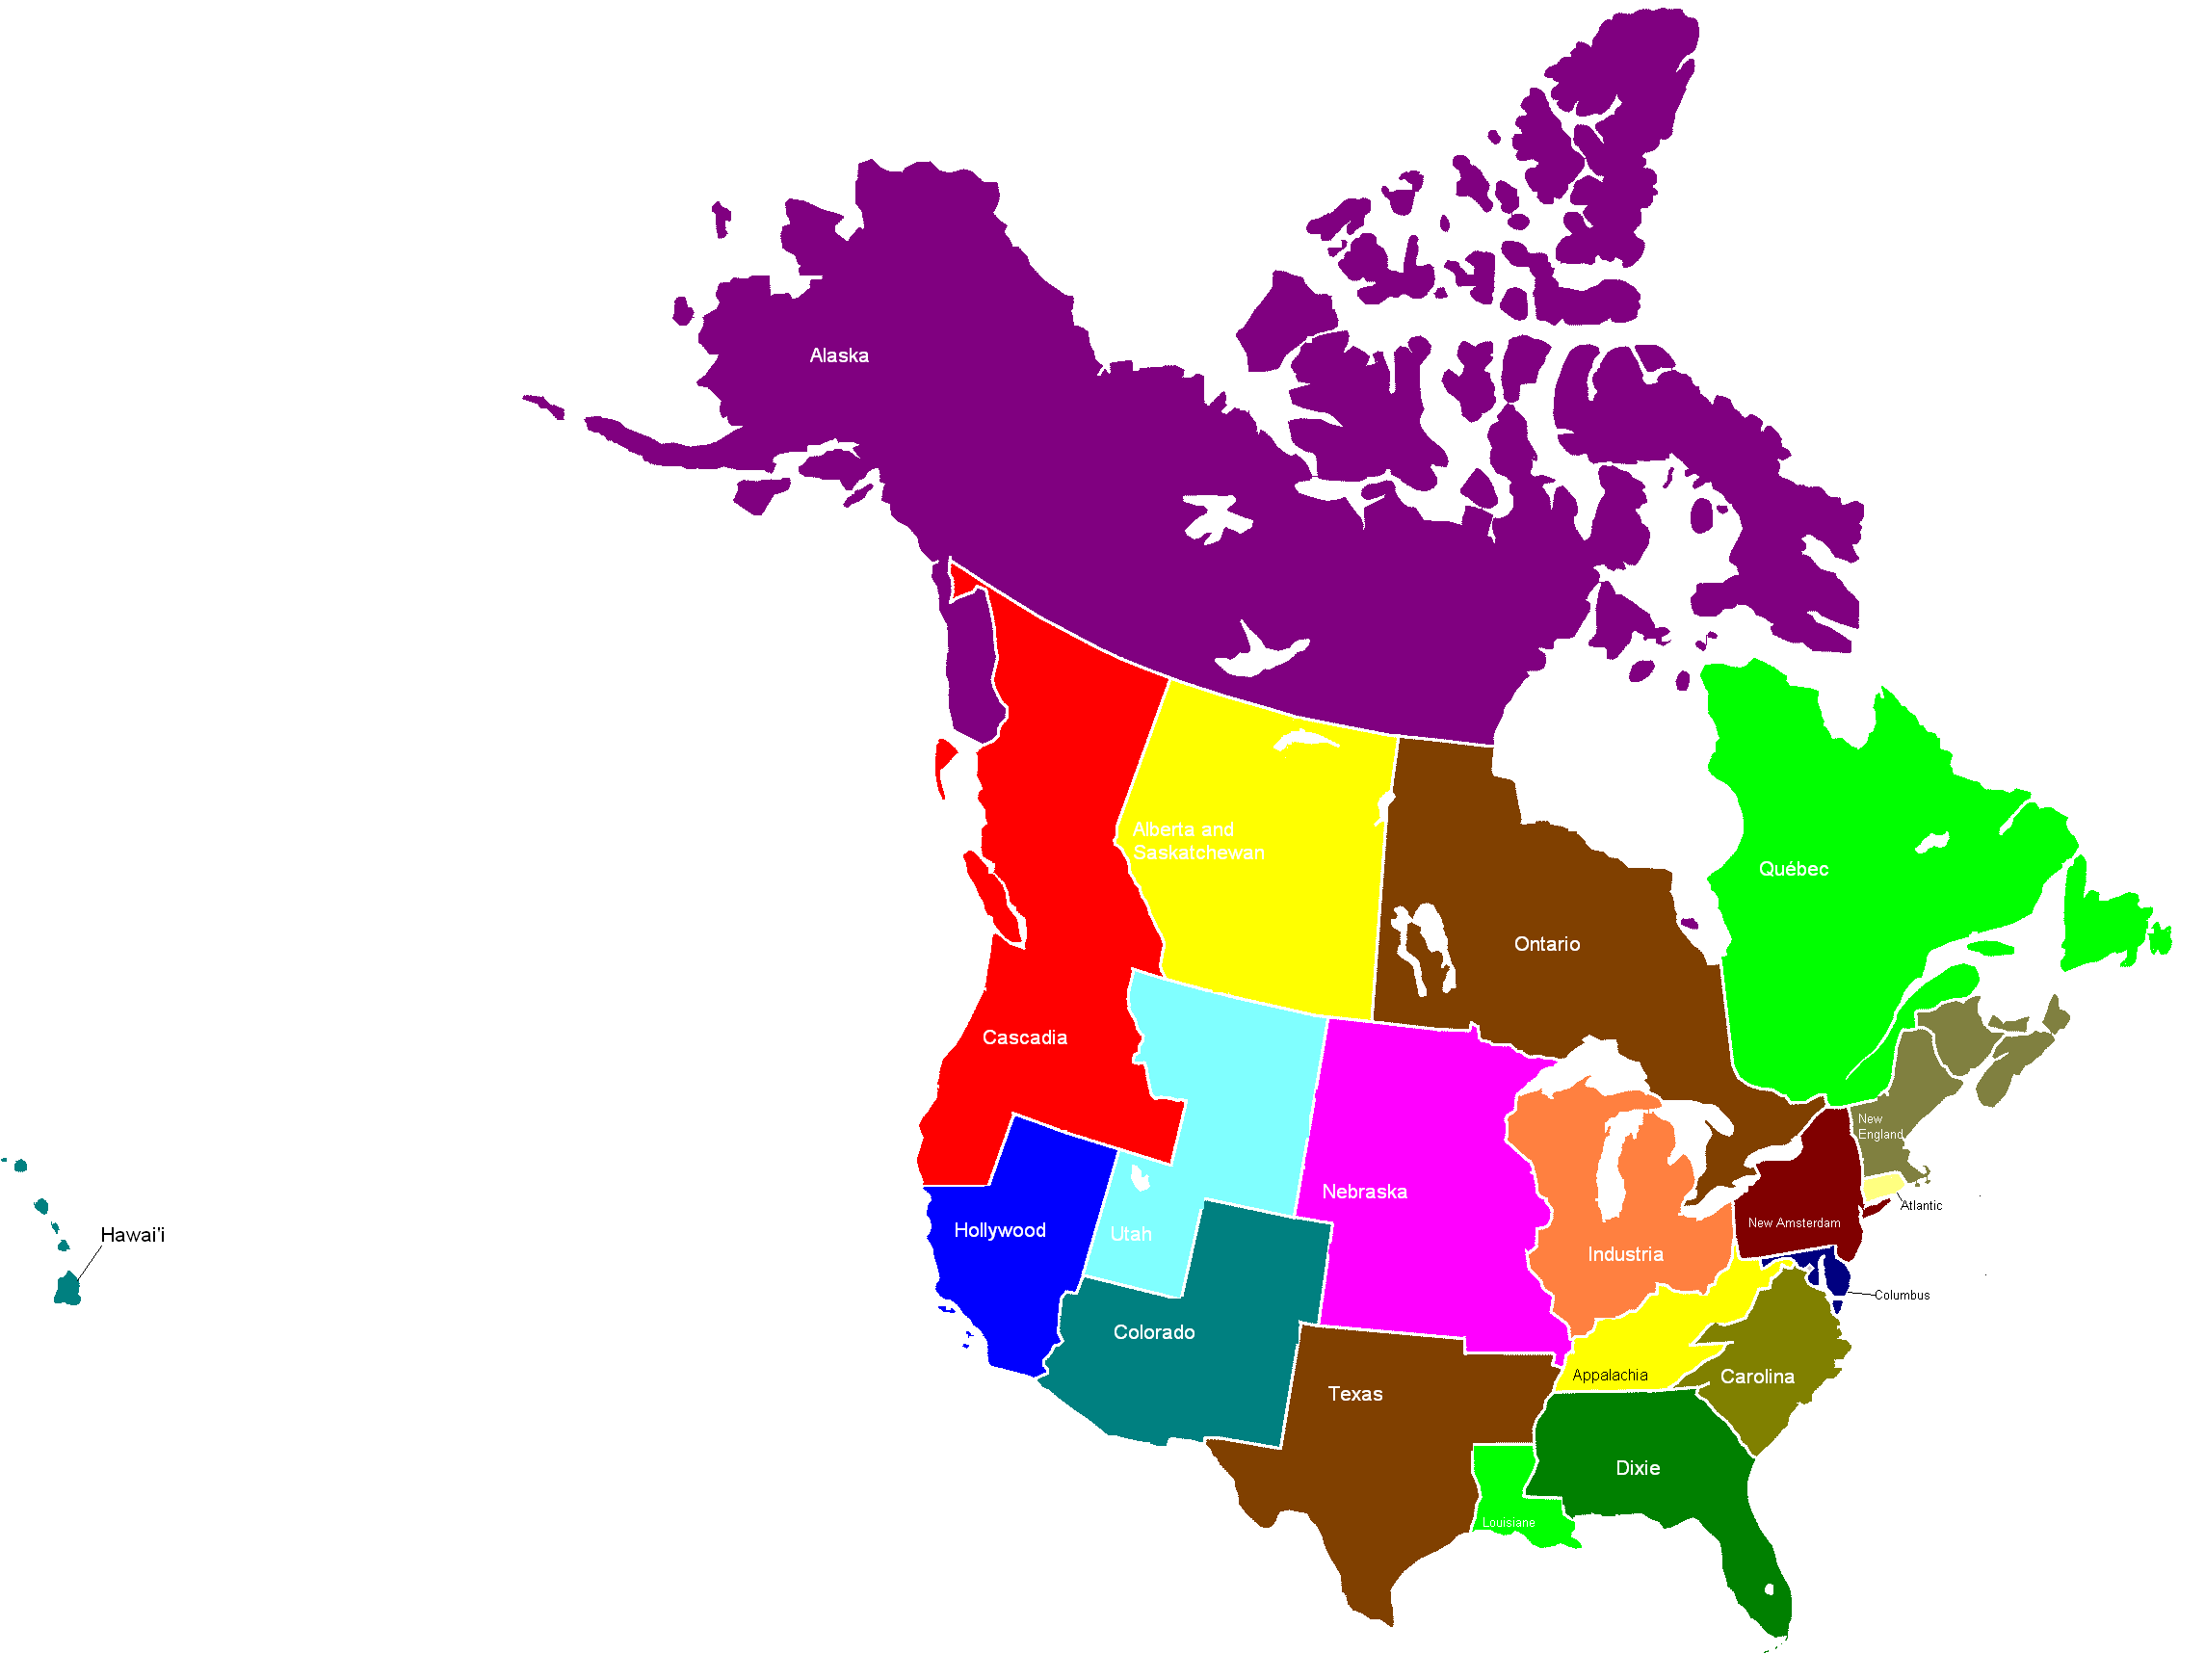 US And Canadian Provinces Alternate North America Maps Pinterest - Map of canada and us